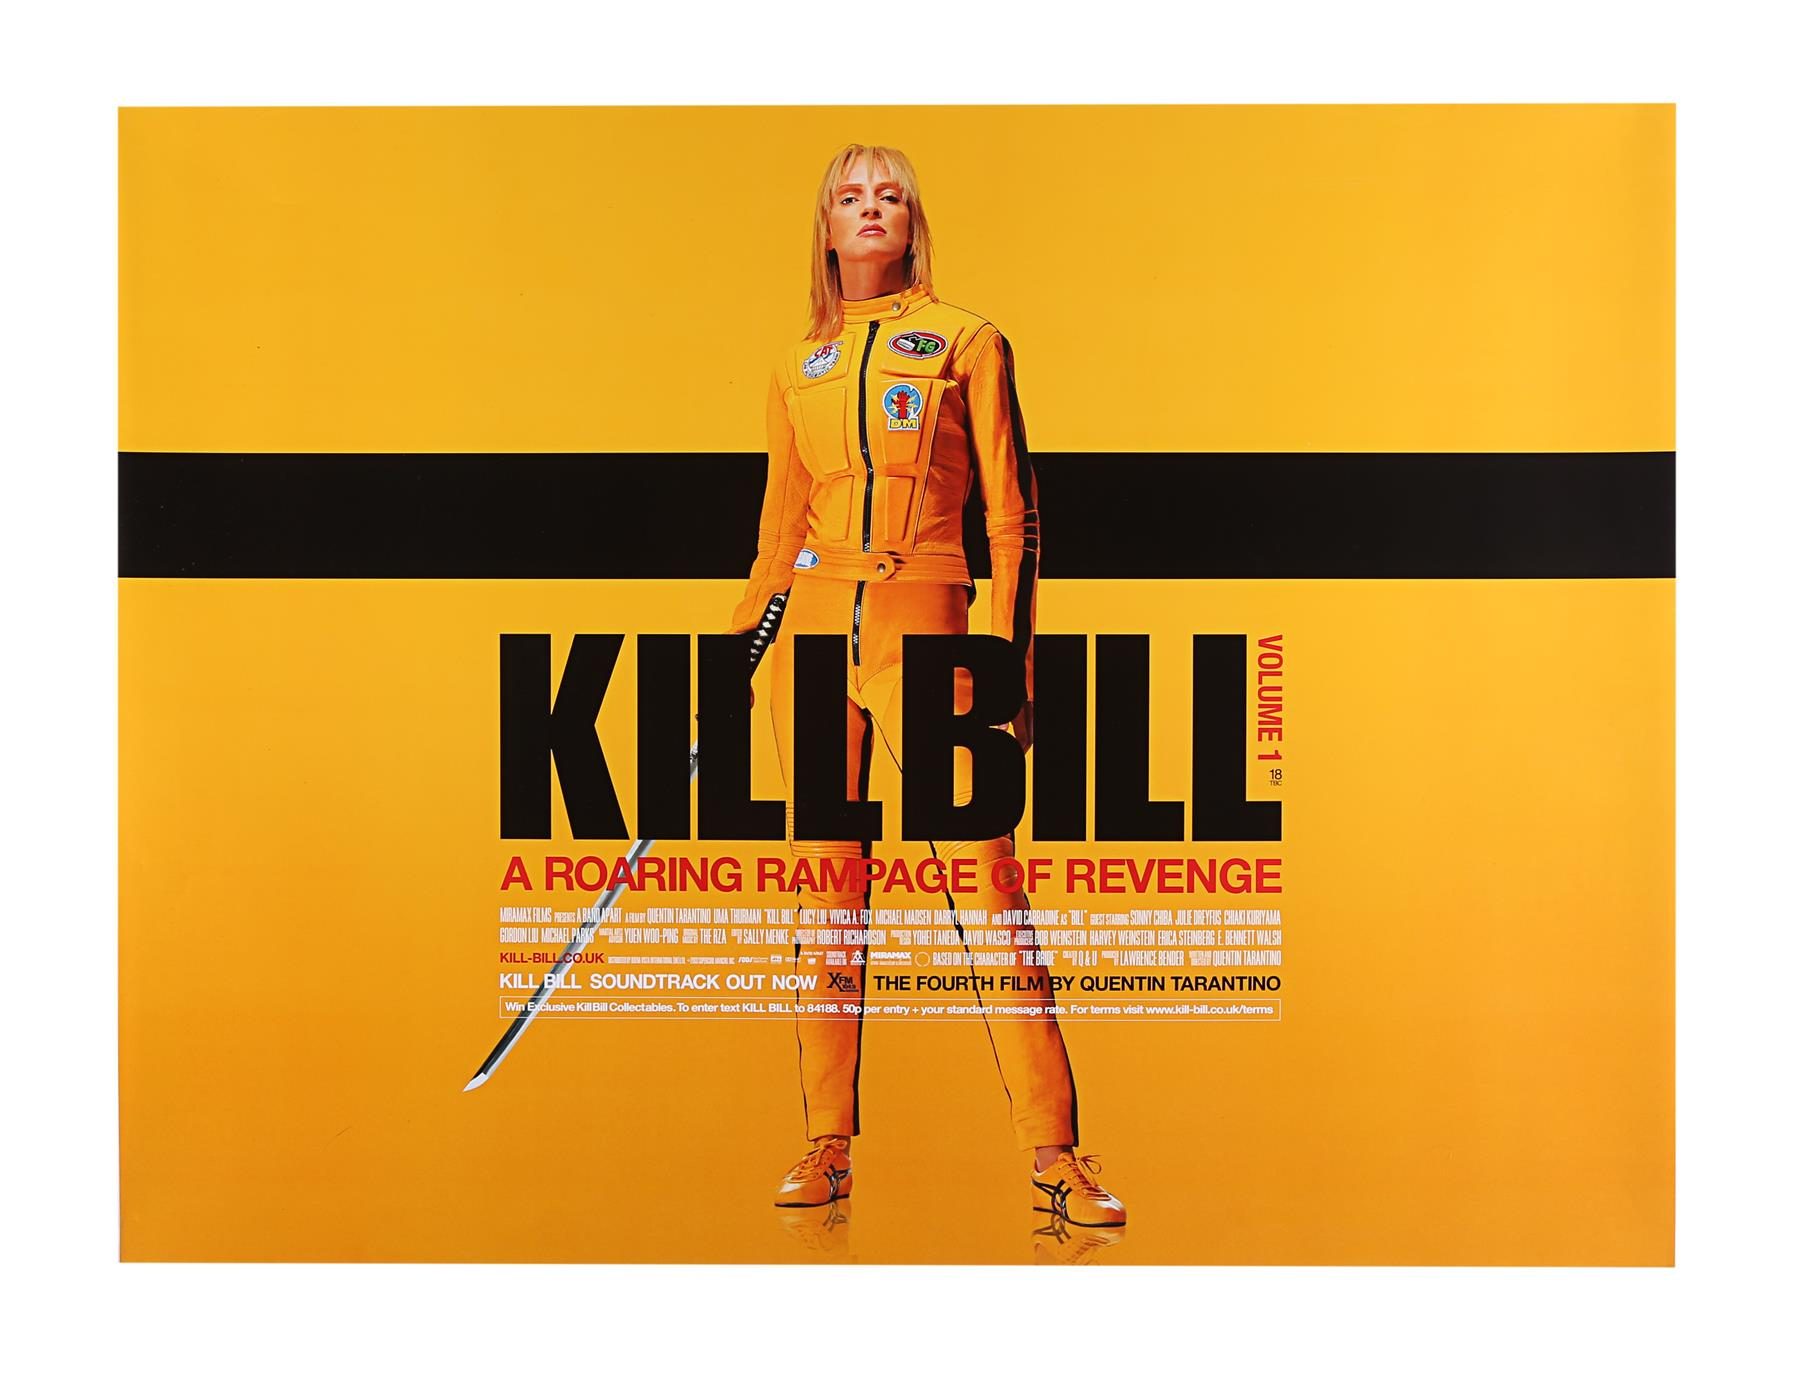 KILL BILL (2003), KILL BILL: VOLUME II (2004) - Two UK Quads, 2003 and 2004 - Image 6 of 9